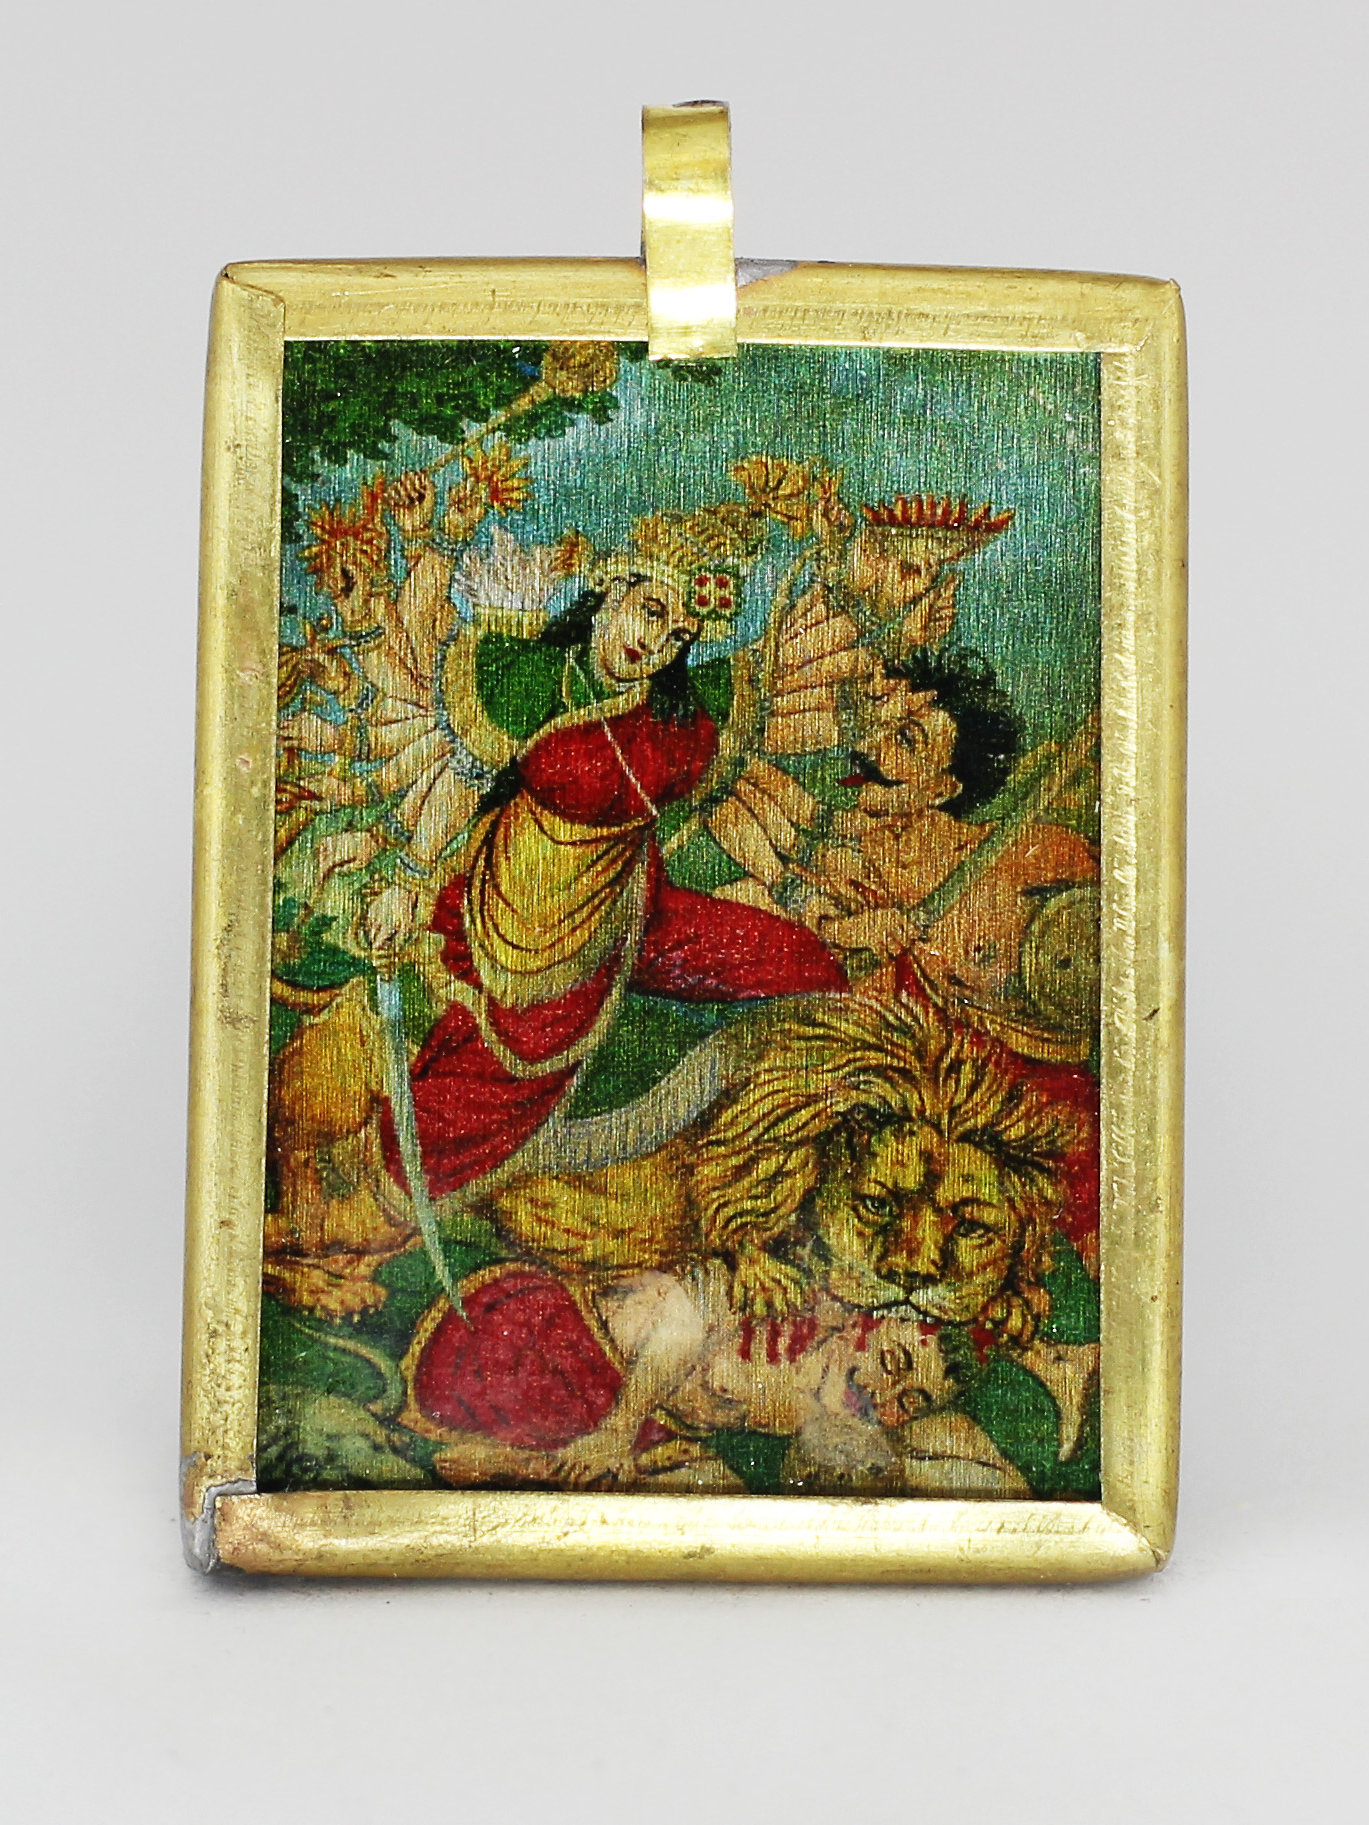 deity pendants and home decor dezigndivine pendant durga all my items are also available wholesale please contact me for more details info dezigndivine com